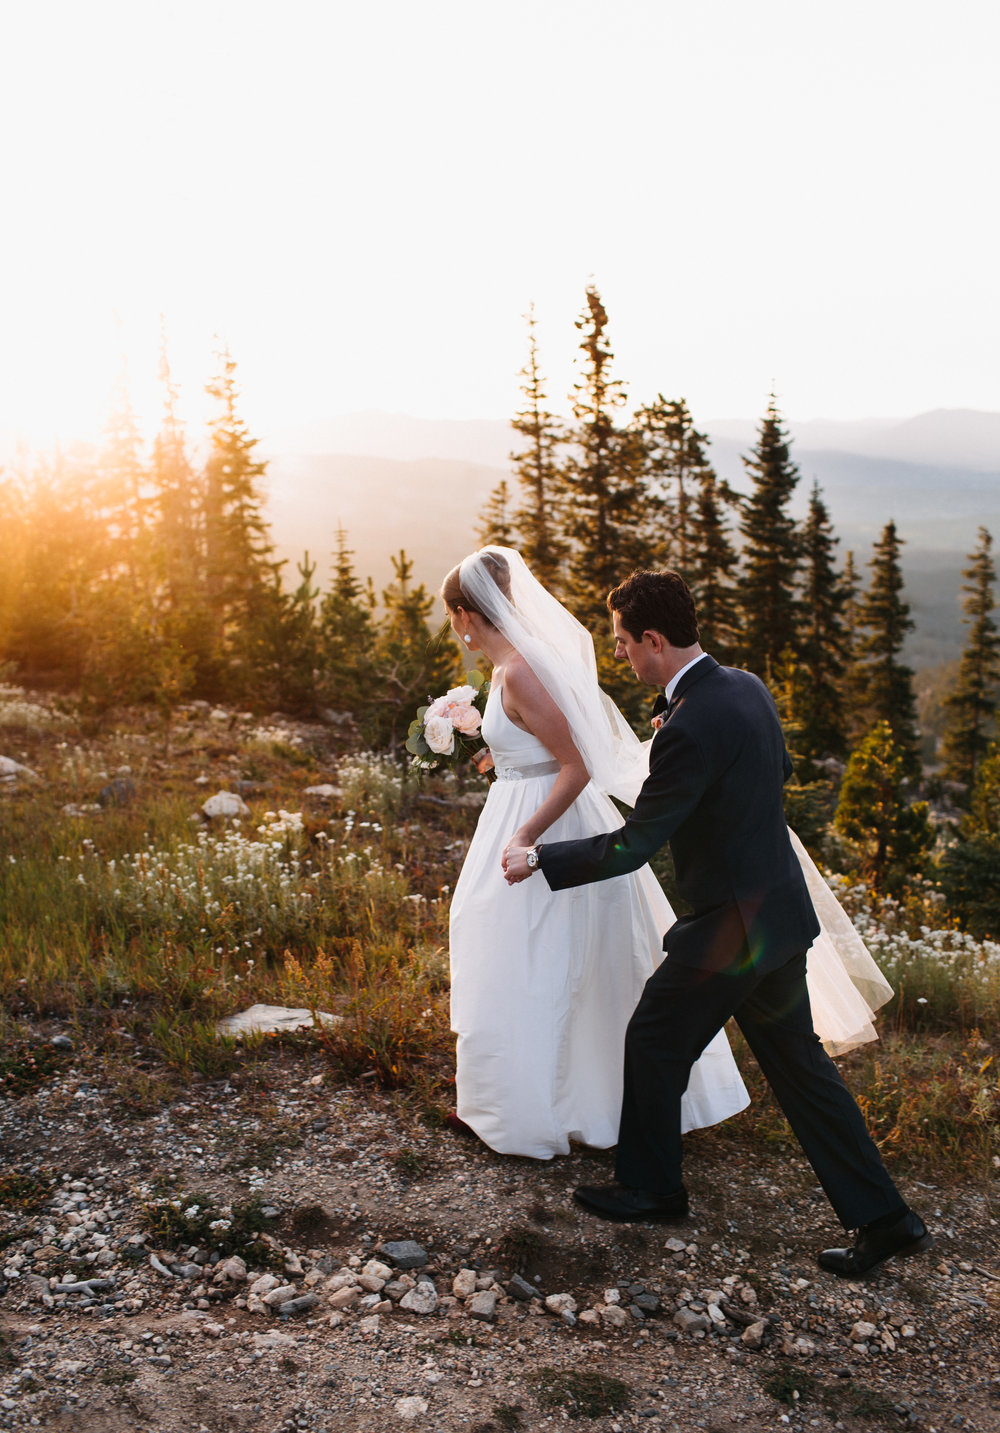 Copy of NADEGE + JOE | MOUNTAIN WEDDING AT THE LODGE AT SUNSPOT